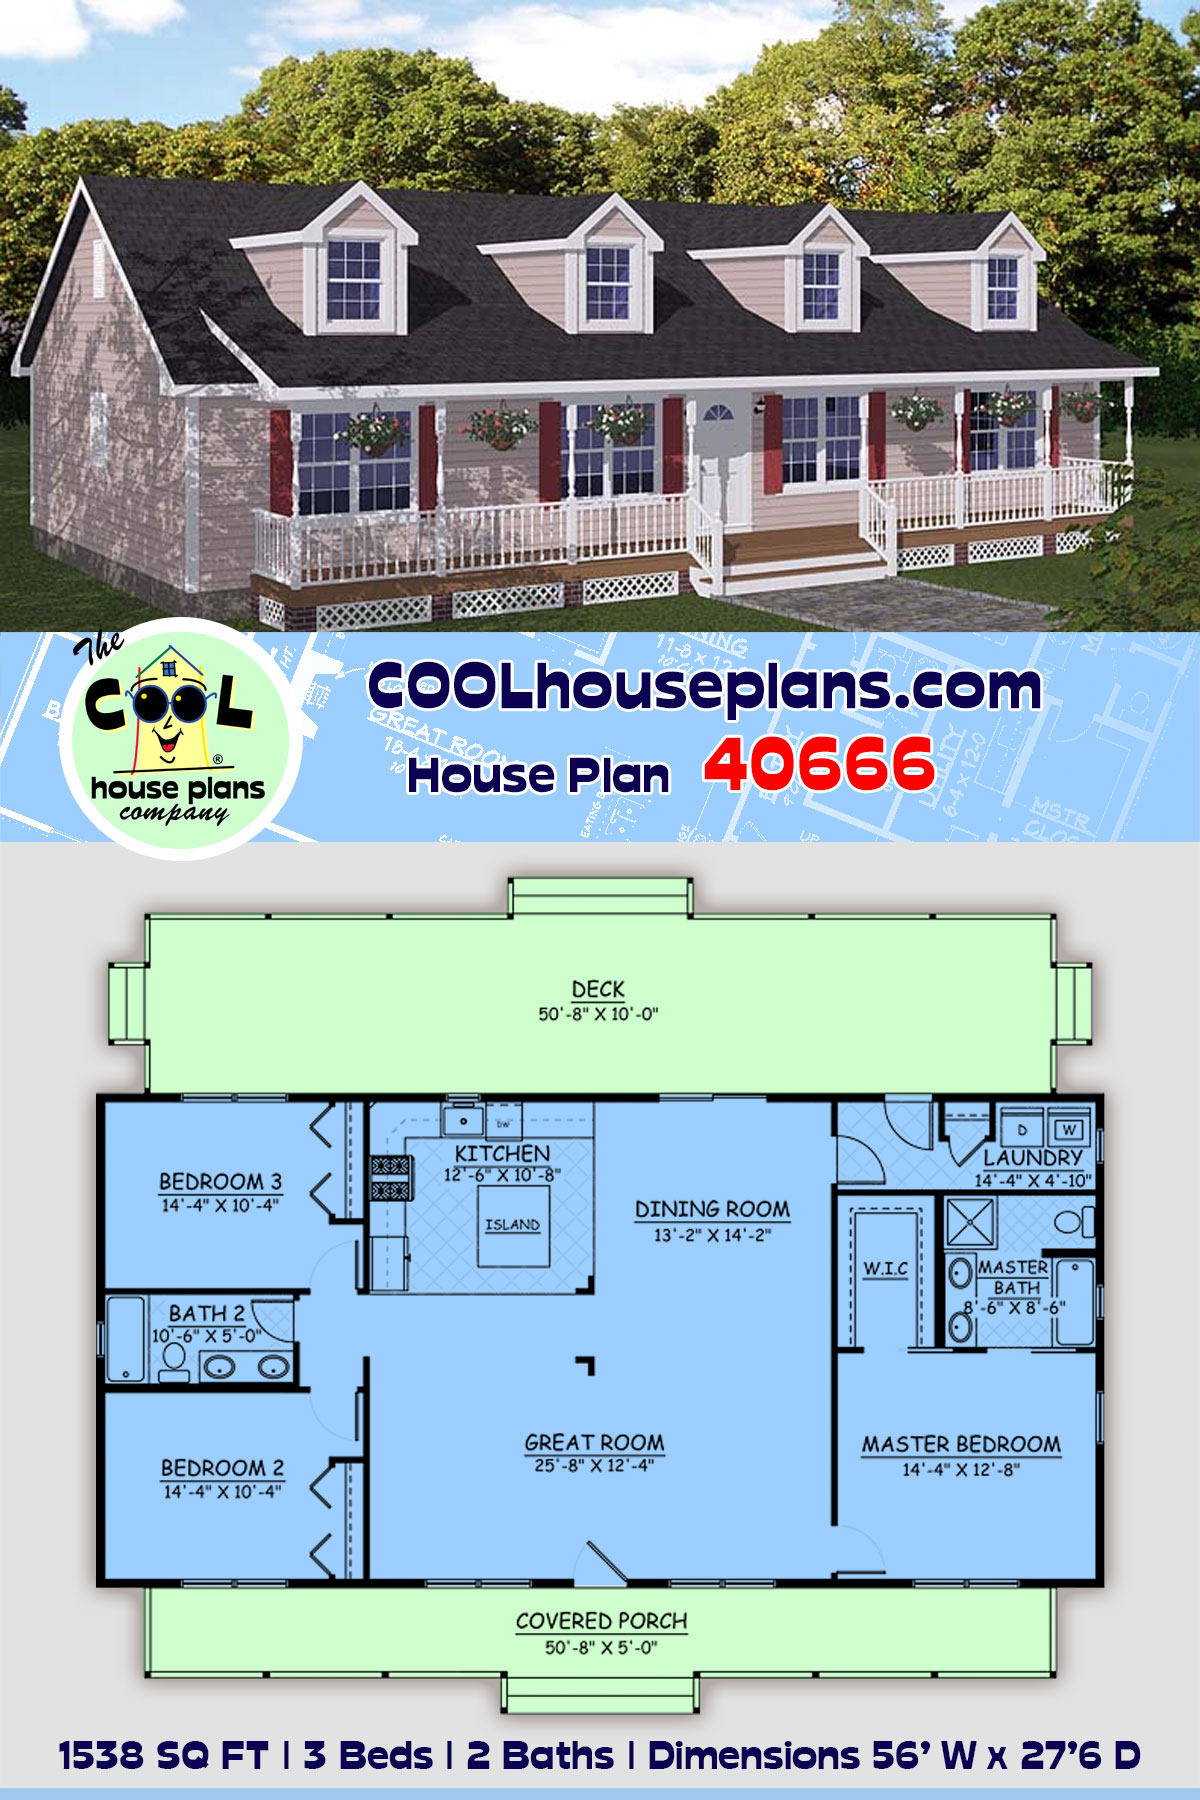 Country, Ranch, Southern House Plan 40666 with 3 Beds, 2 Baths